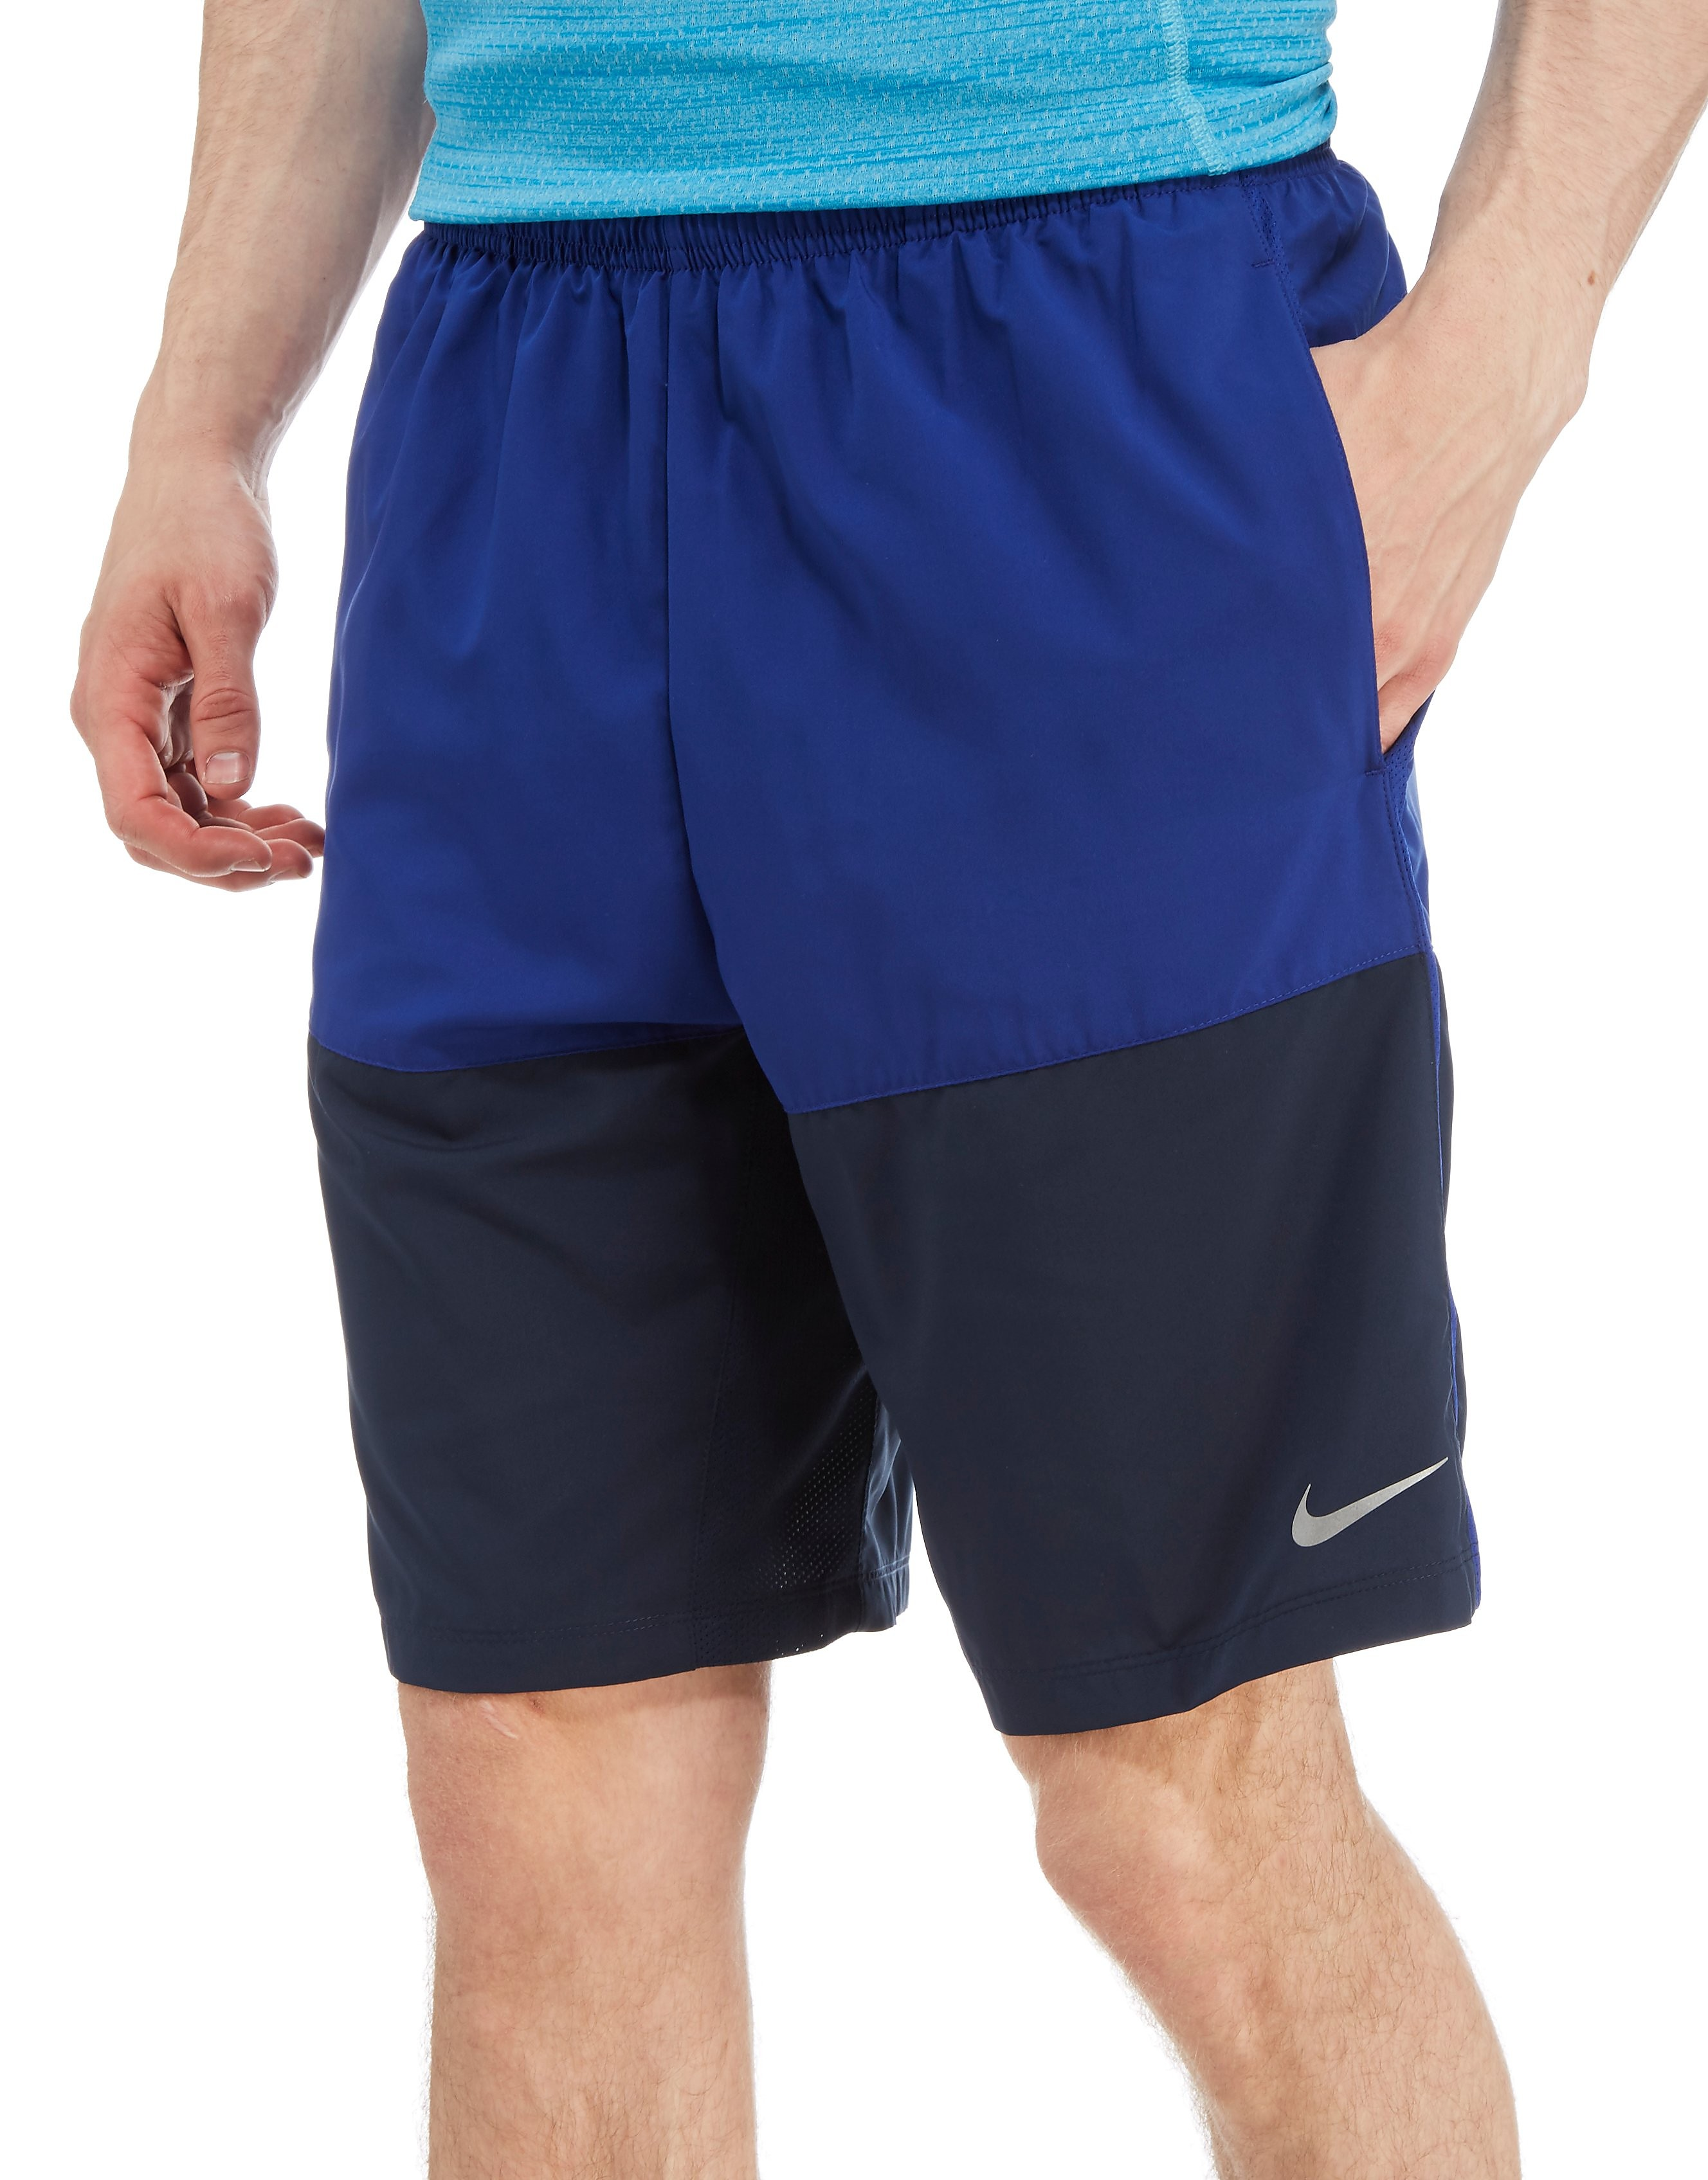 Nike Distance Shorts (23 cm)